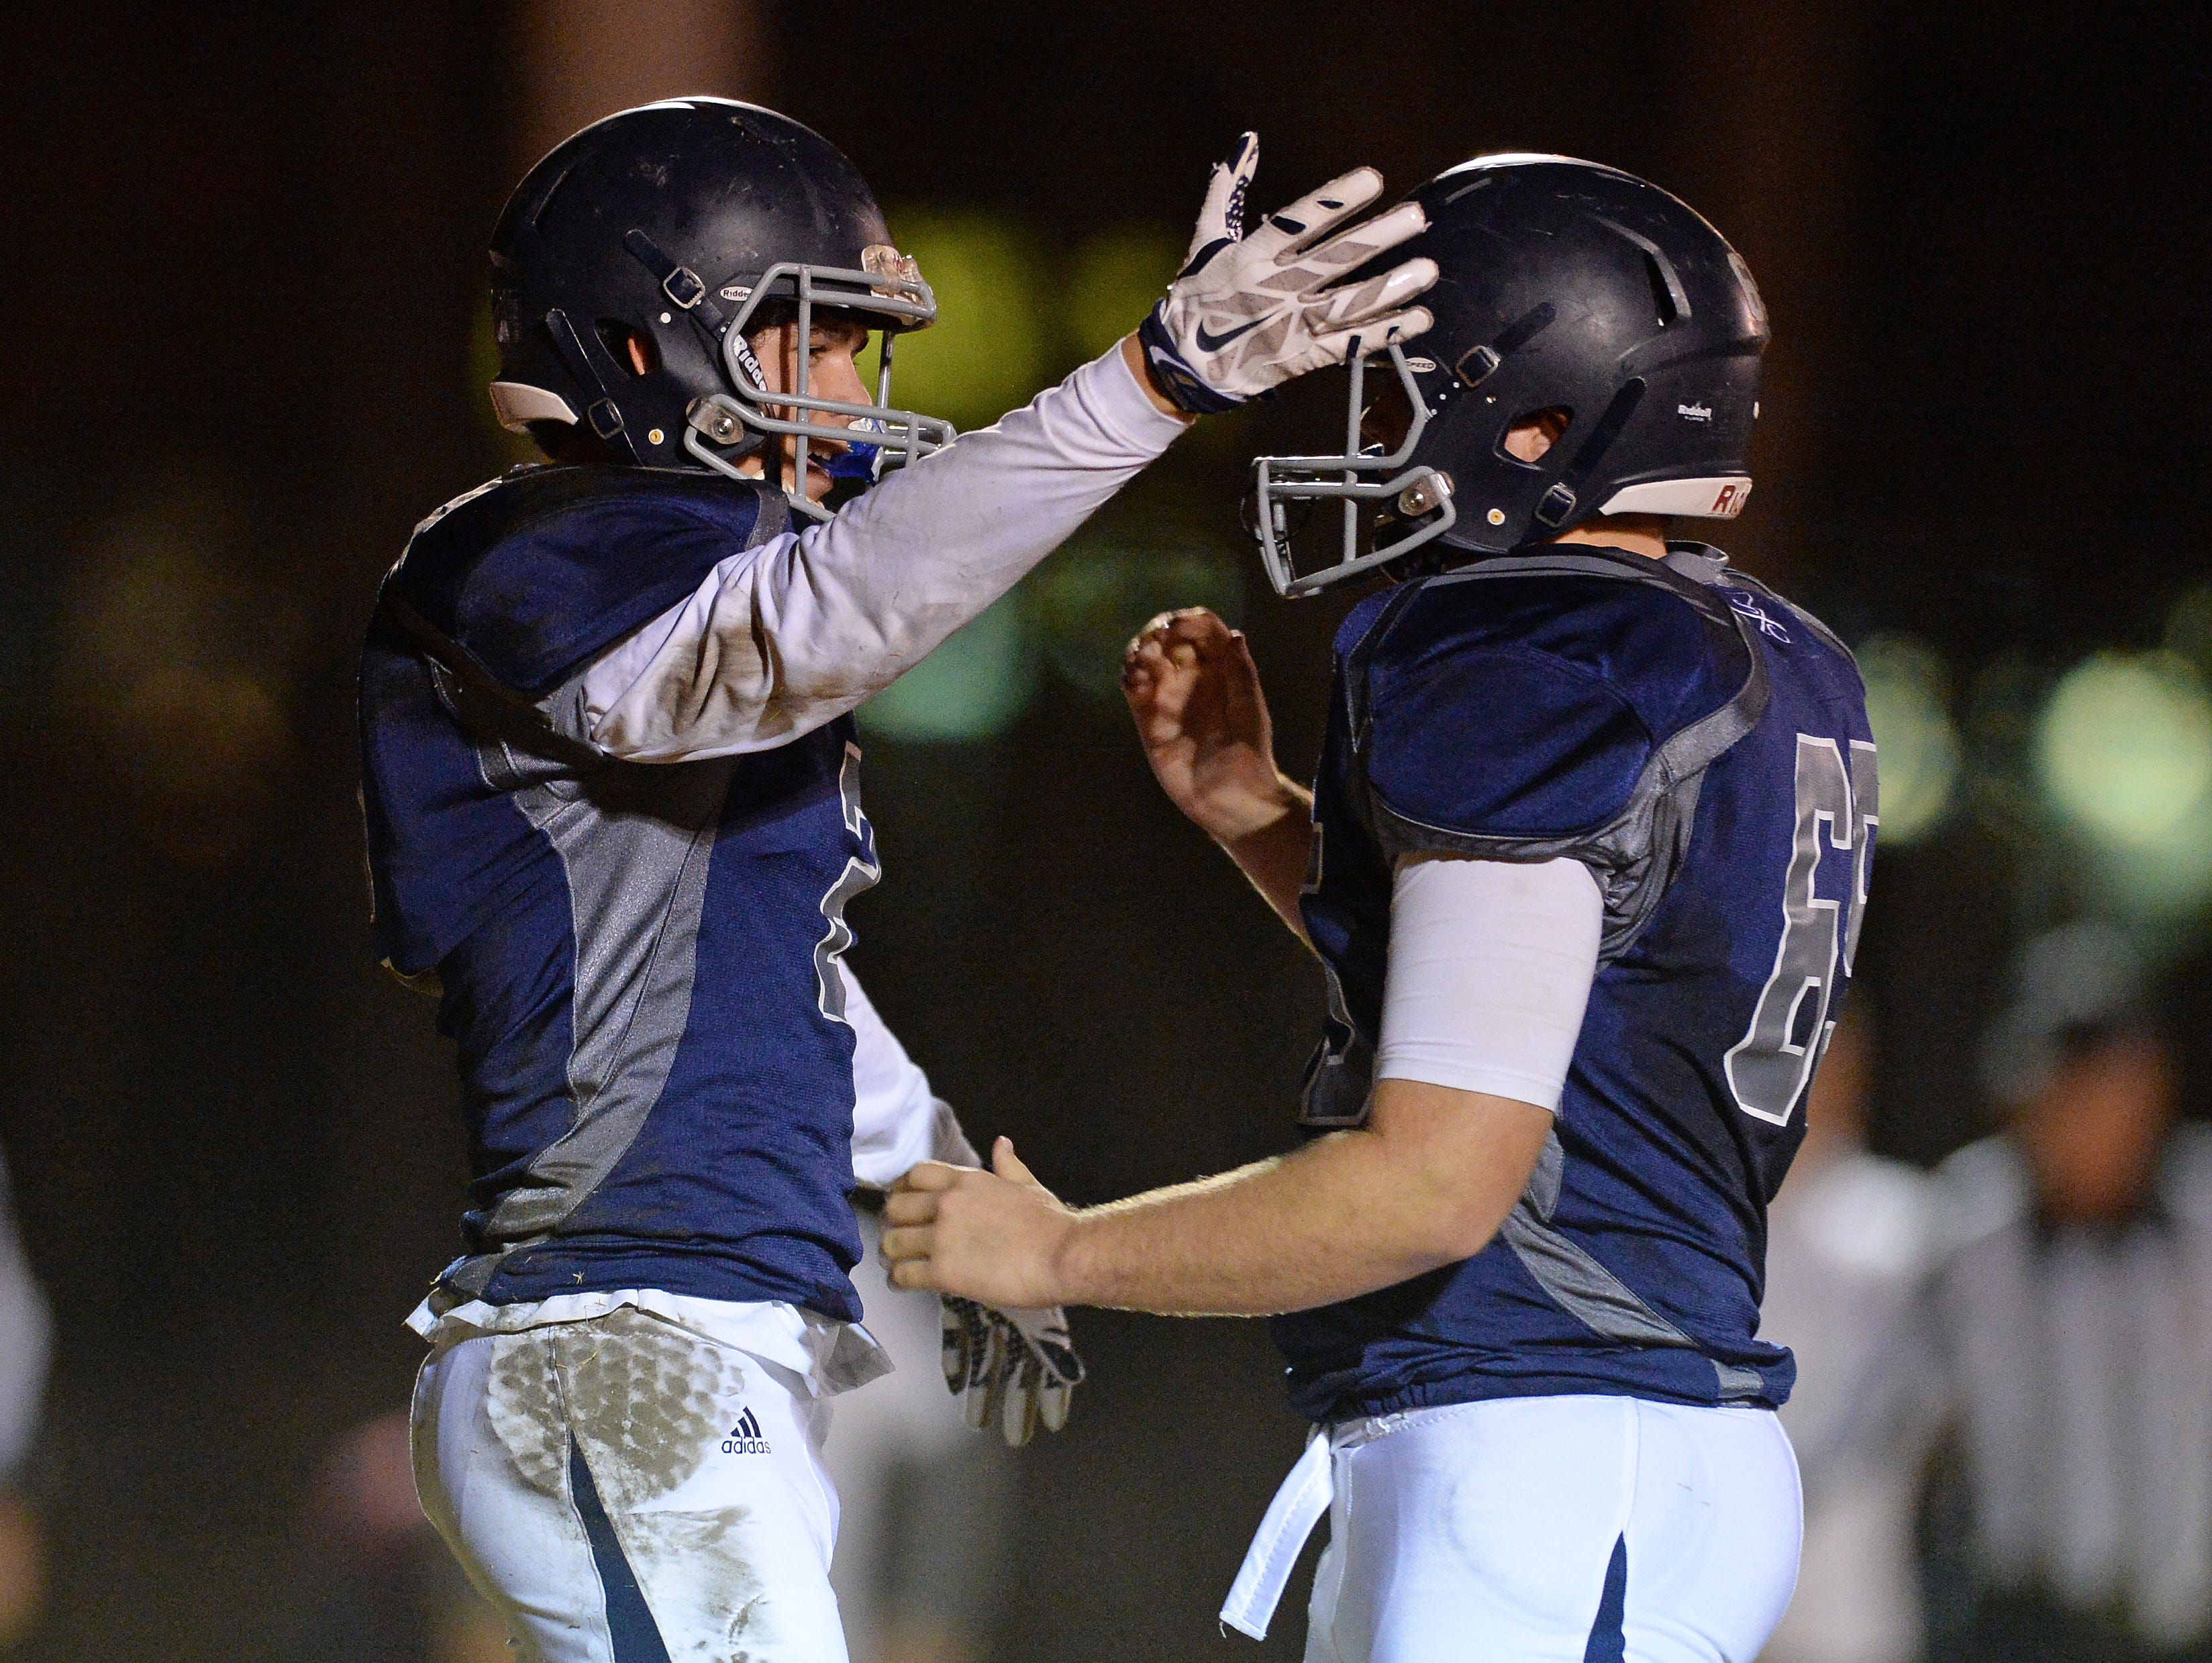 Southside Christian's Cooper Jackson (2) celebrates with teammate Connor Wheatley (65) after catching a TD against McBee during the Class A Division I playoffs Friday, November 27, 2015.